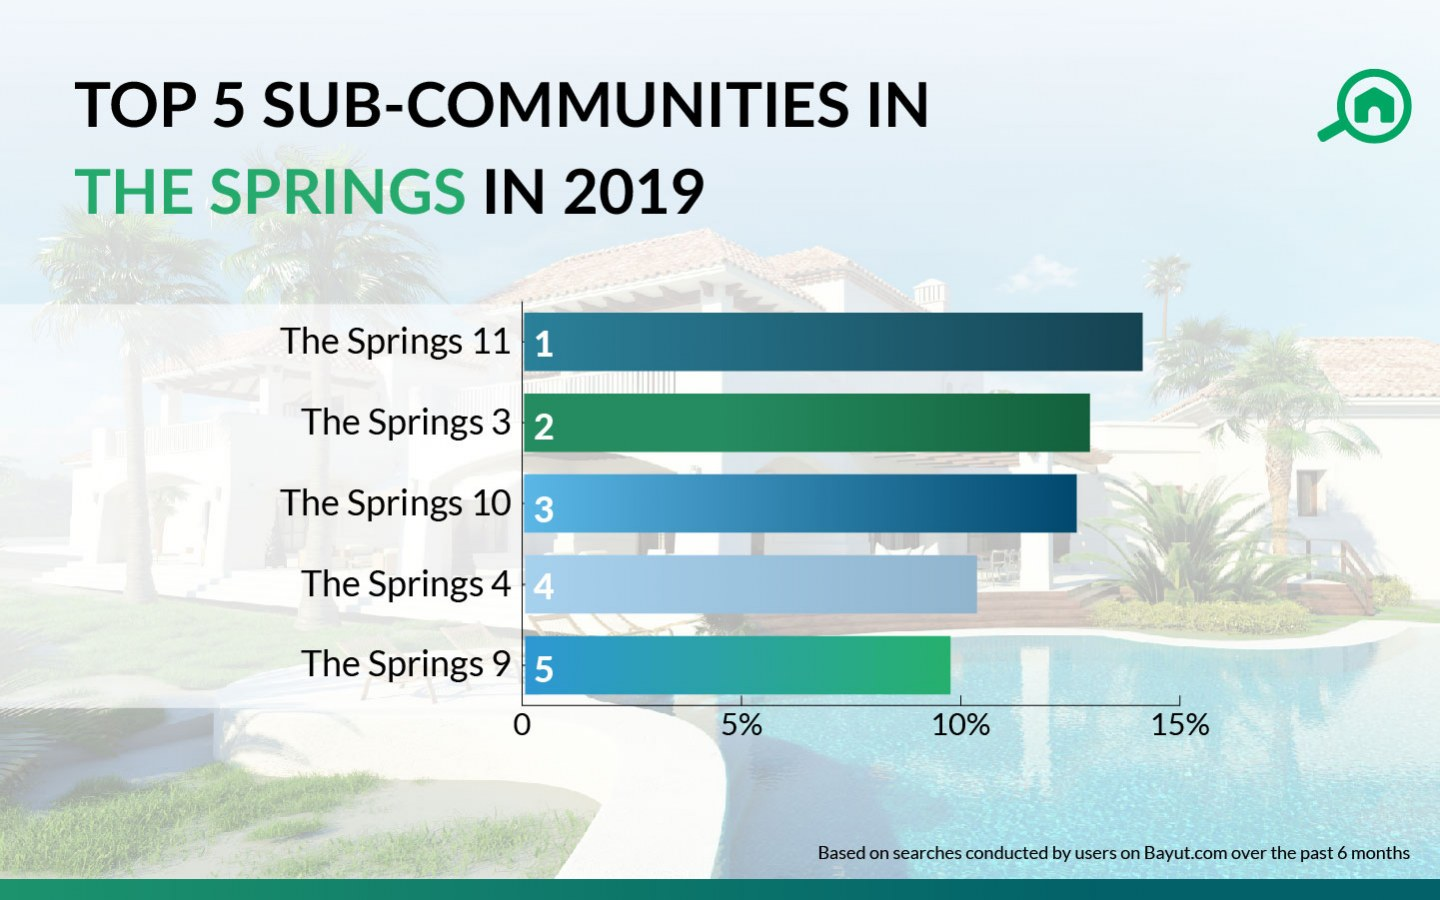 Popular areas in The Springs